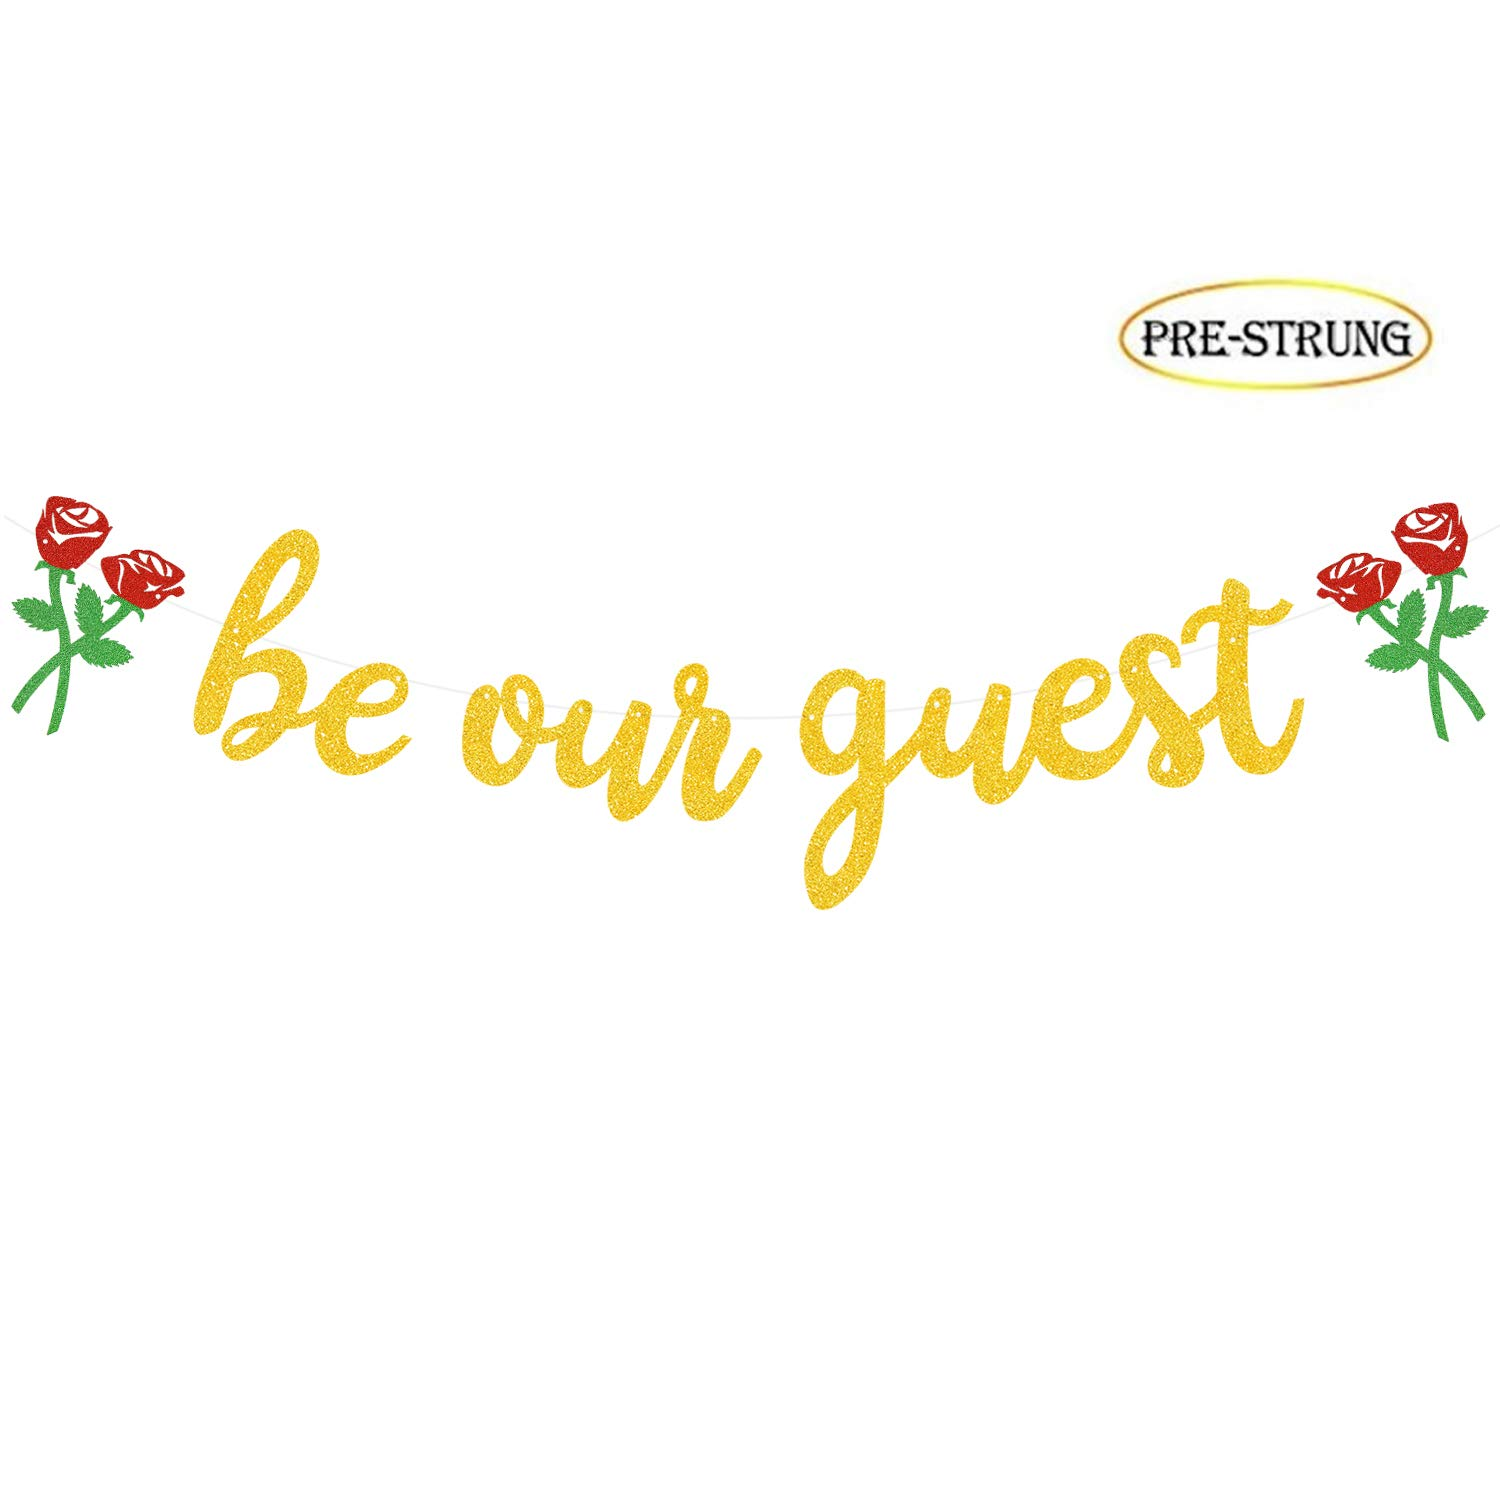 image regarding Be Our Guest Printable identified as Be Our Visitor Banner, Reception Banner Bachelorete Bash Engagement Social gathering Decorations